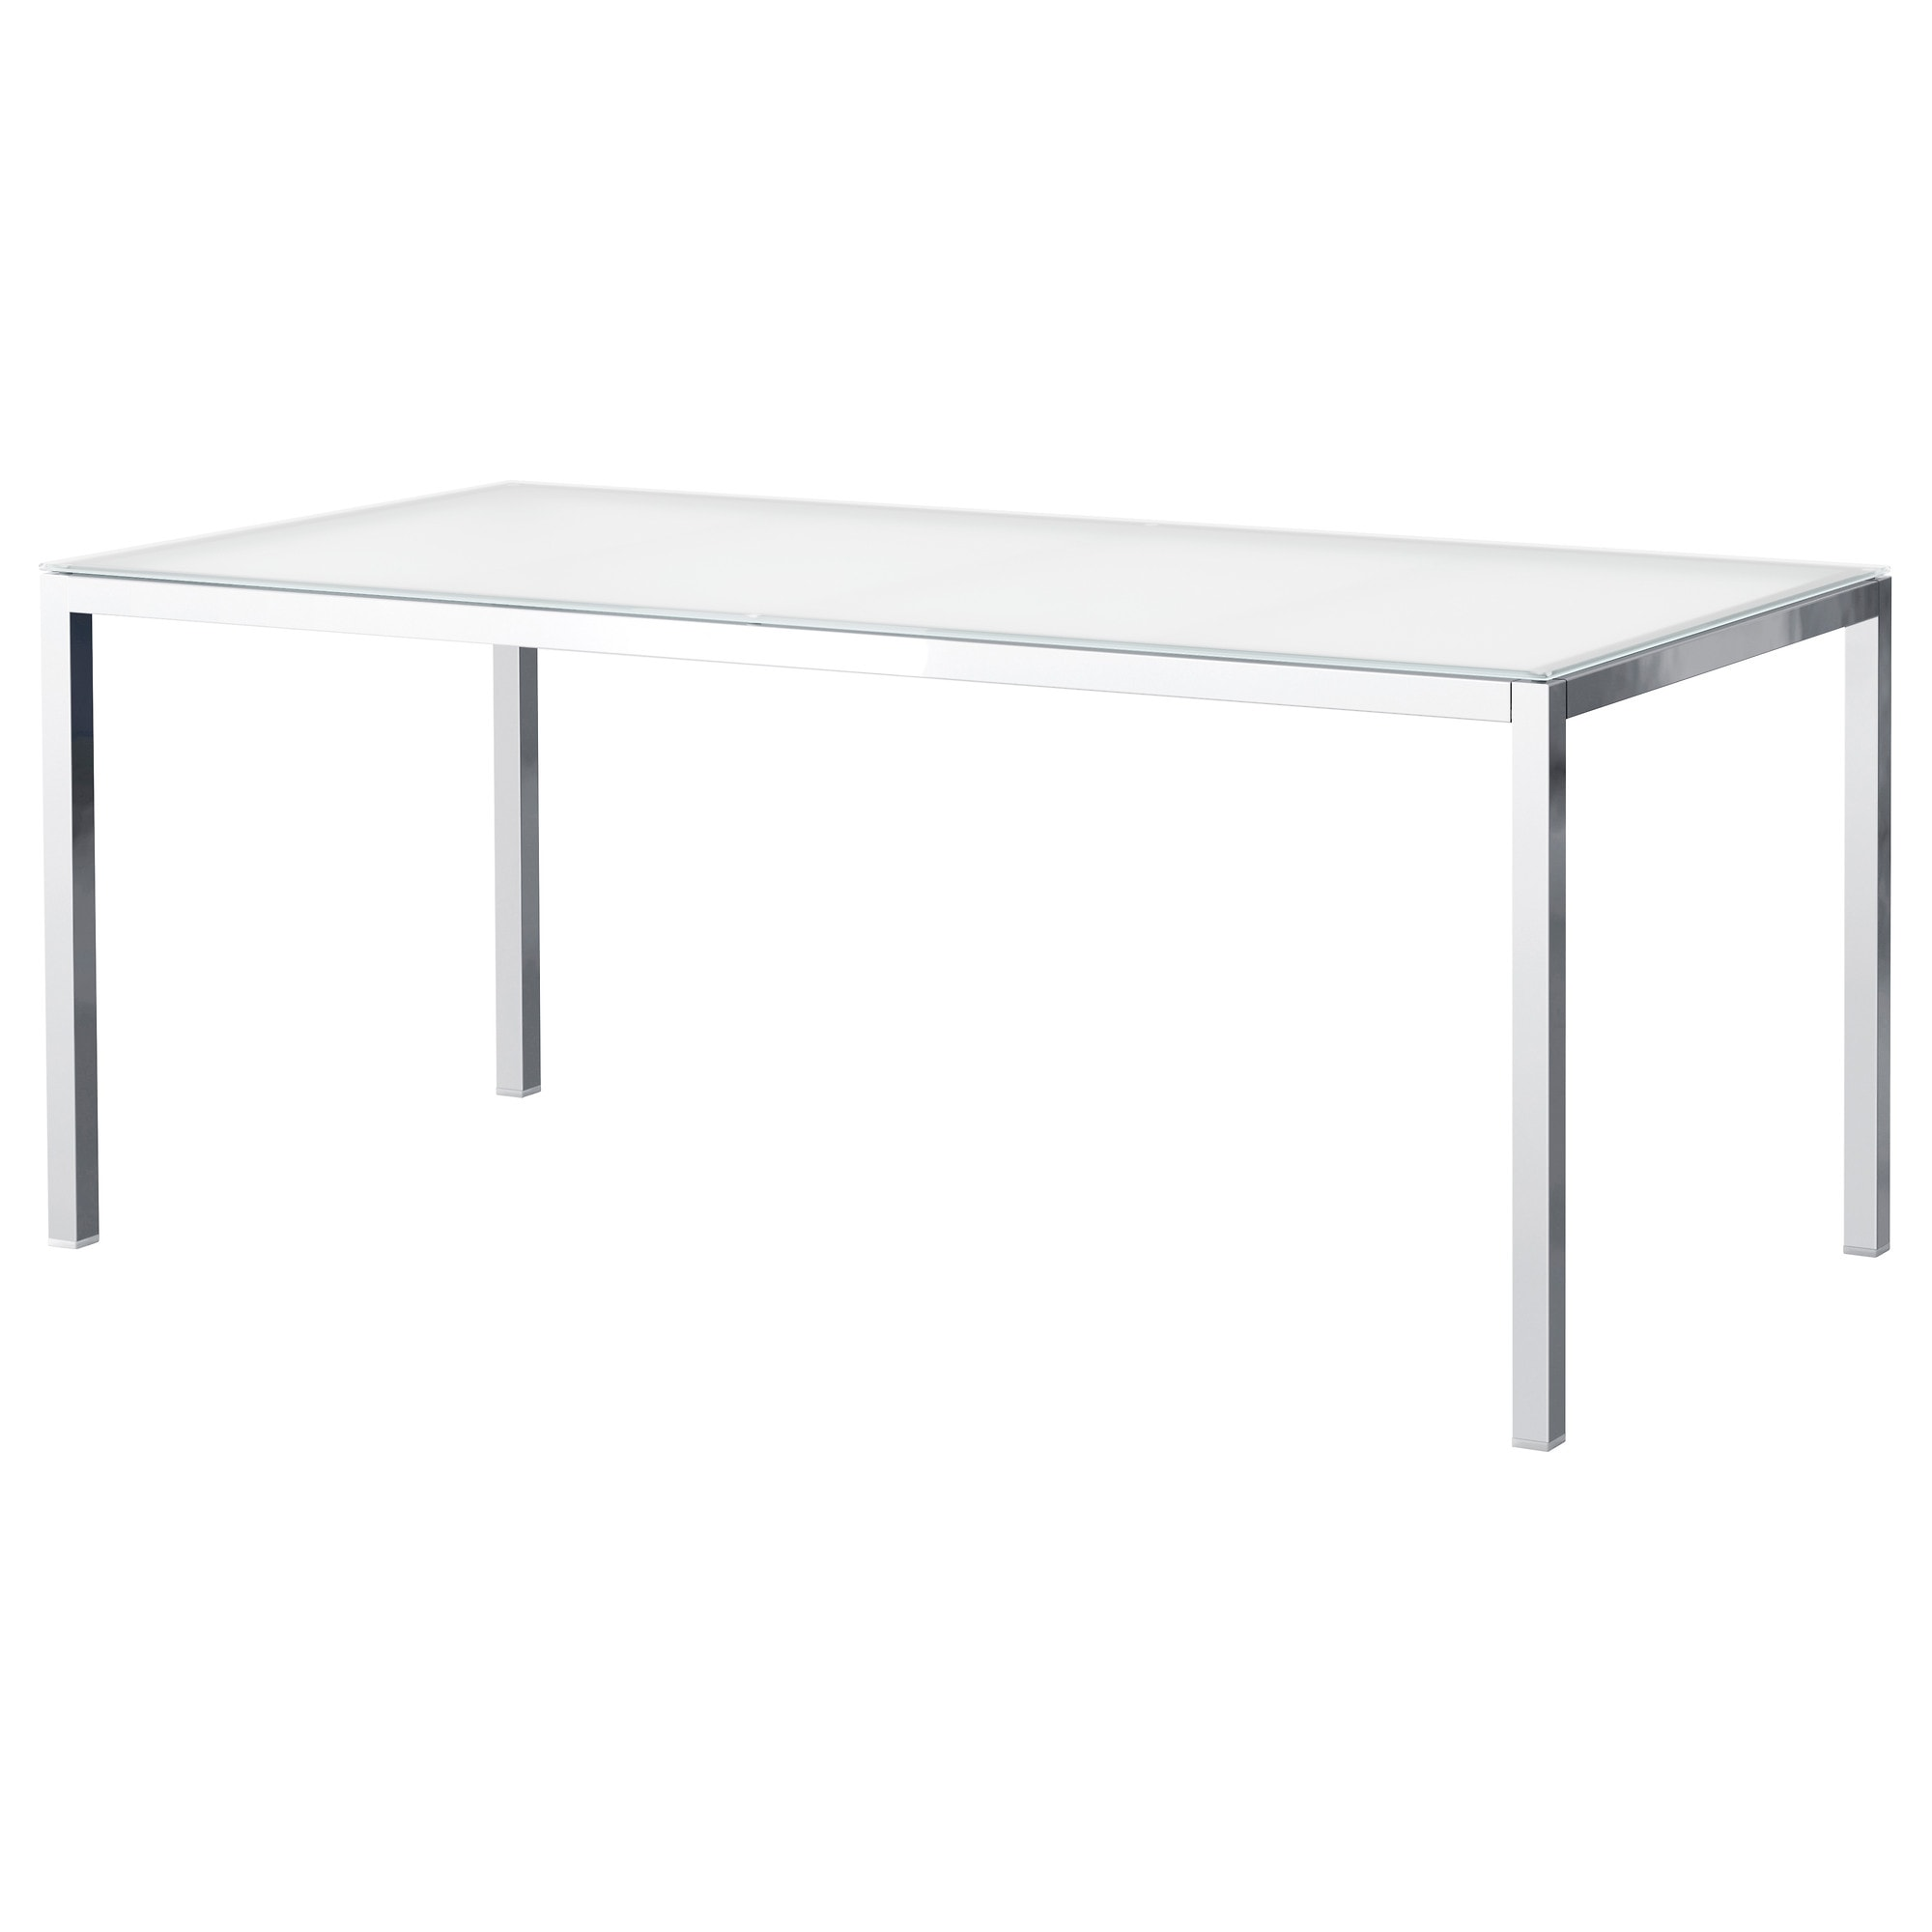 Table ronde plateau verre ikea - Table ronde ikea blanche ...